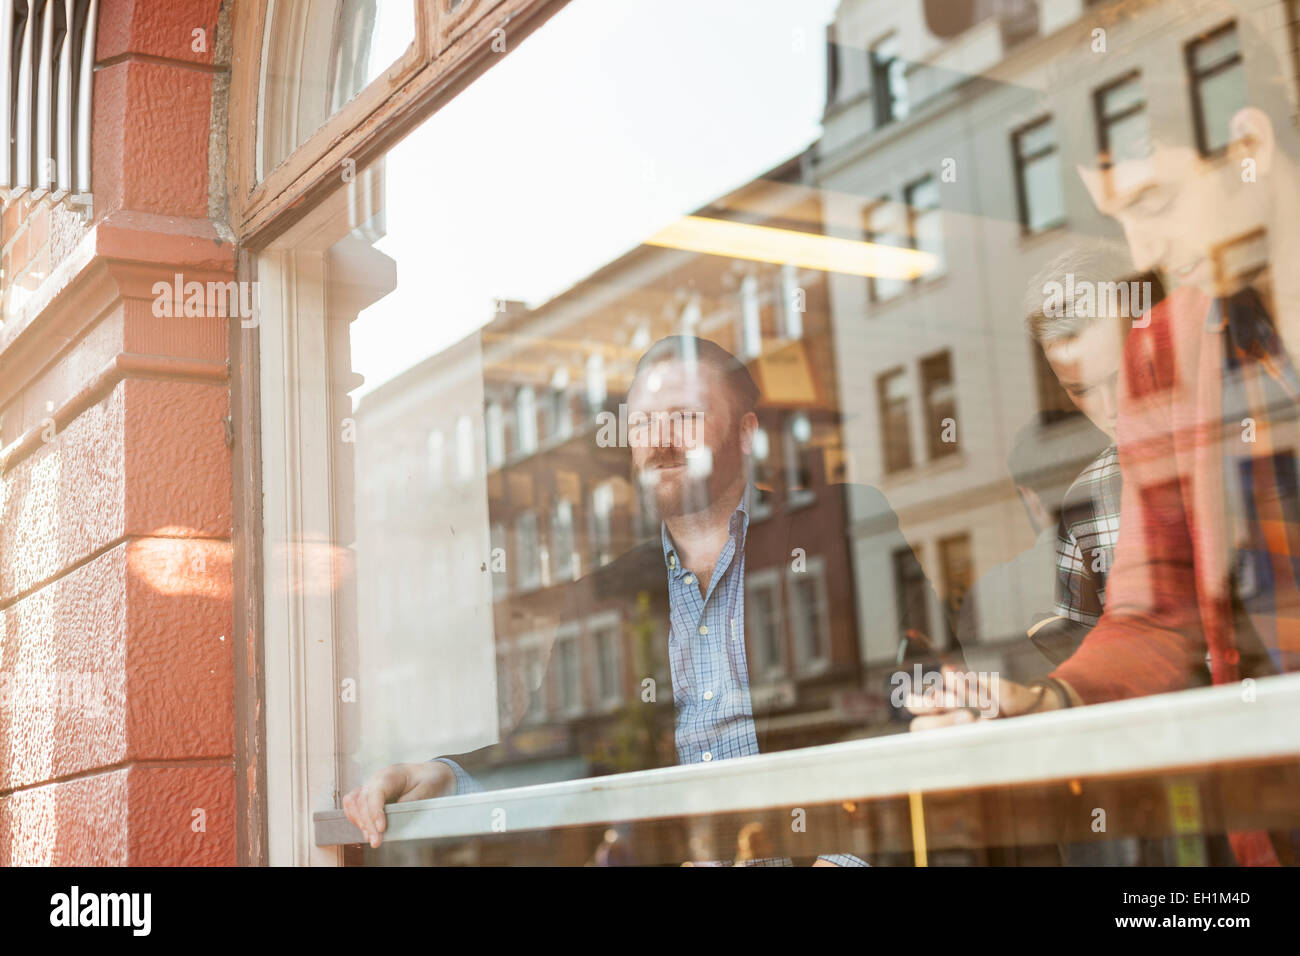 Businessmen in cafeteria seen through glass window - Stock Image